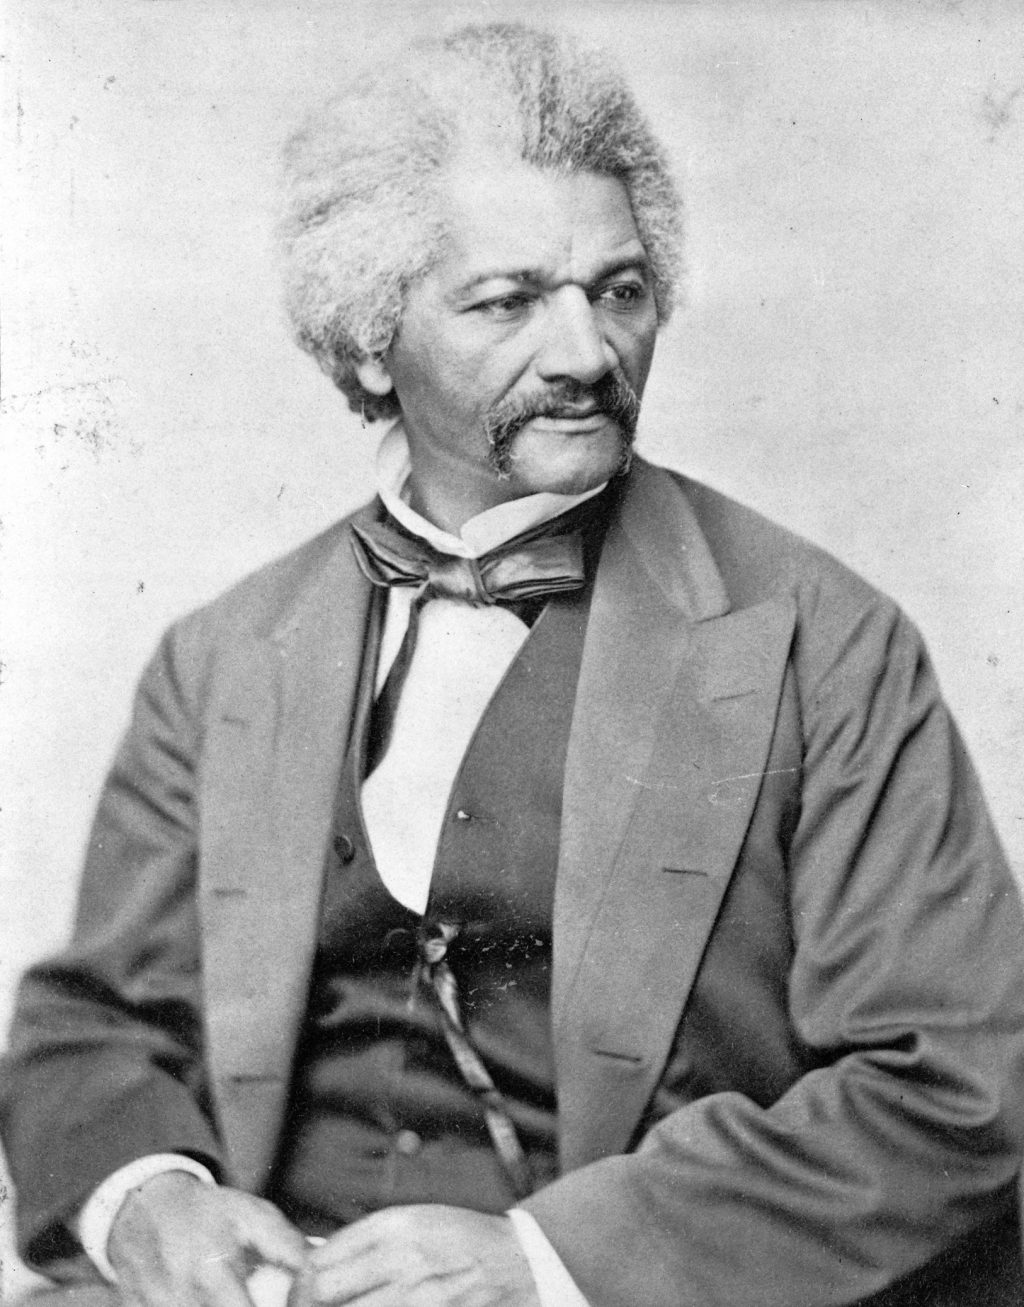 Abolitionist, journalist and author Frederick Douglass. Photo by George Francis Schreiber, April 26, 1870. Prints and Photographs Division, Library of Congress